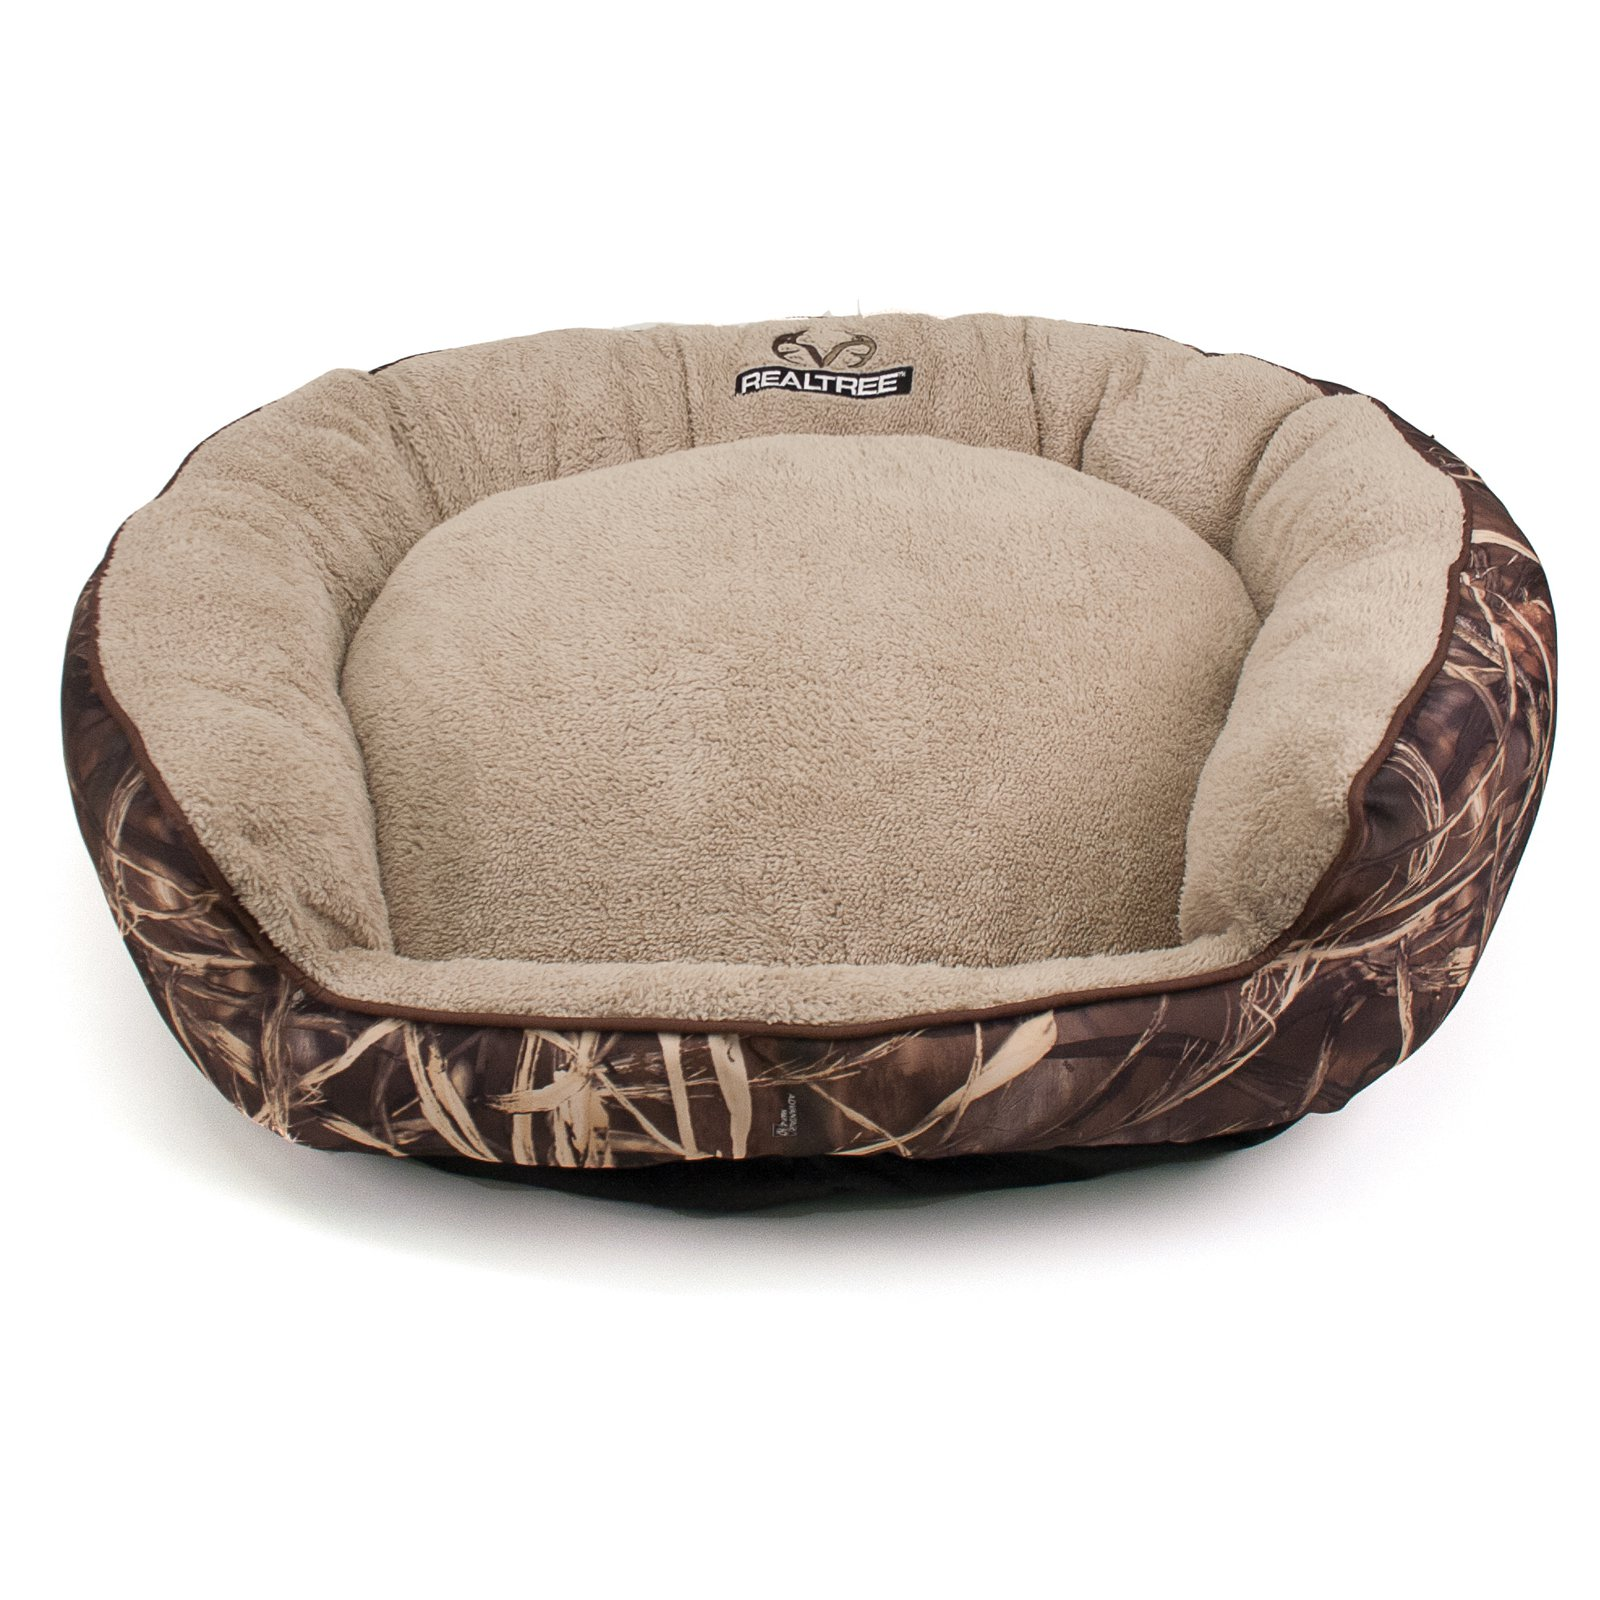 dallas manufacturing company realtree large camo bolstered pet bed